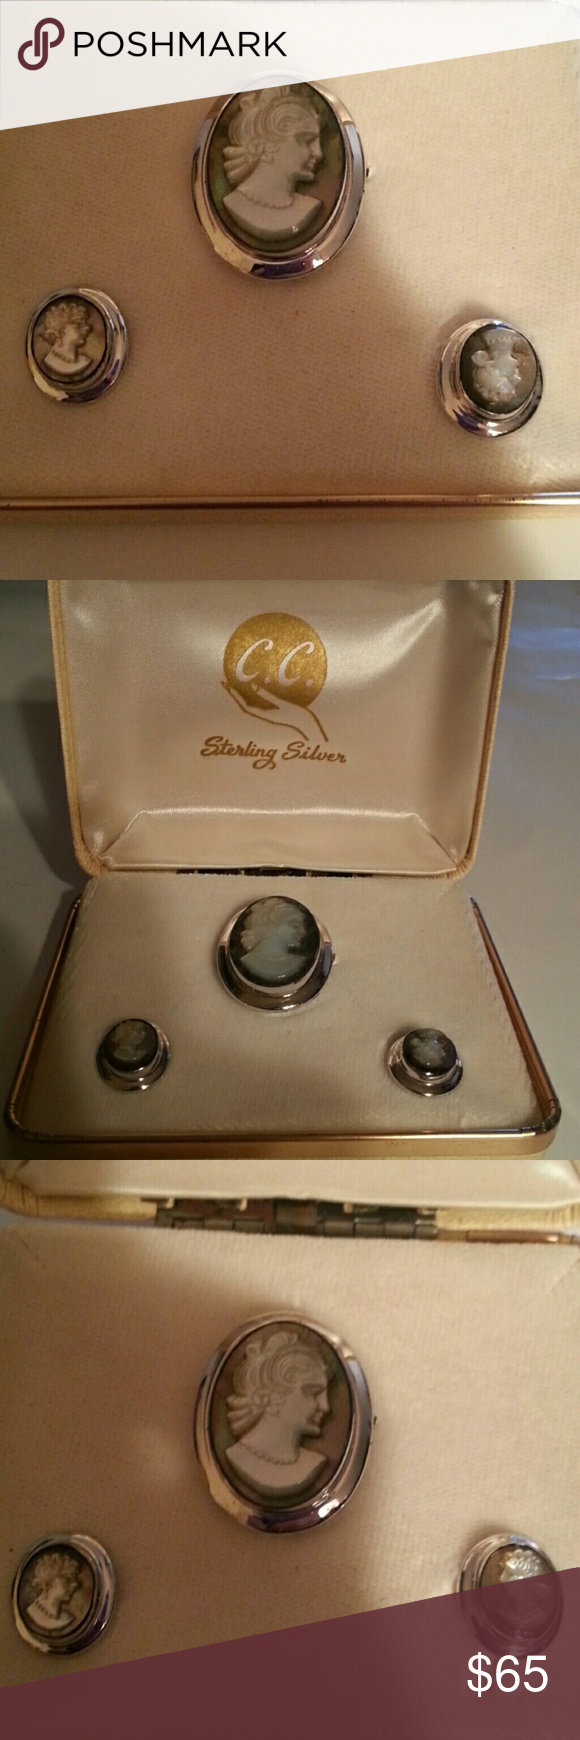 C.C. STERLING SILVER CAMEO SET VINTAGE C. C. STERLING SILVER CAMEO SET VINTAGE PIN , AND EARRINGS SCREW BACK GOOD CONDITION ORIGINAL BOX WHICH IS A BIT SOILED ON OUTSIDE C. C. Jewelry